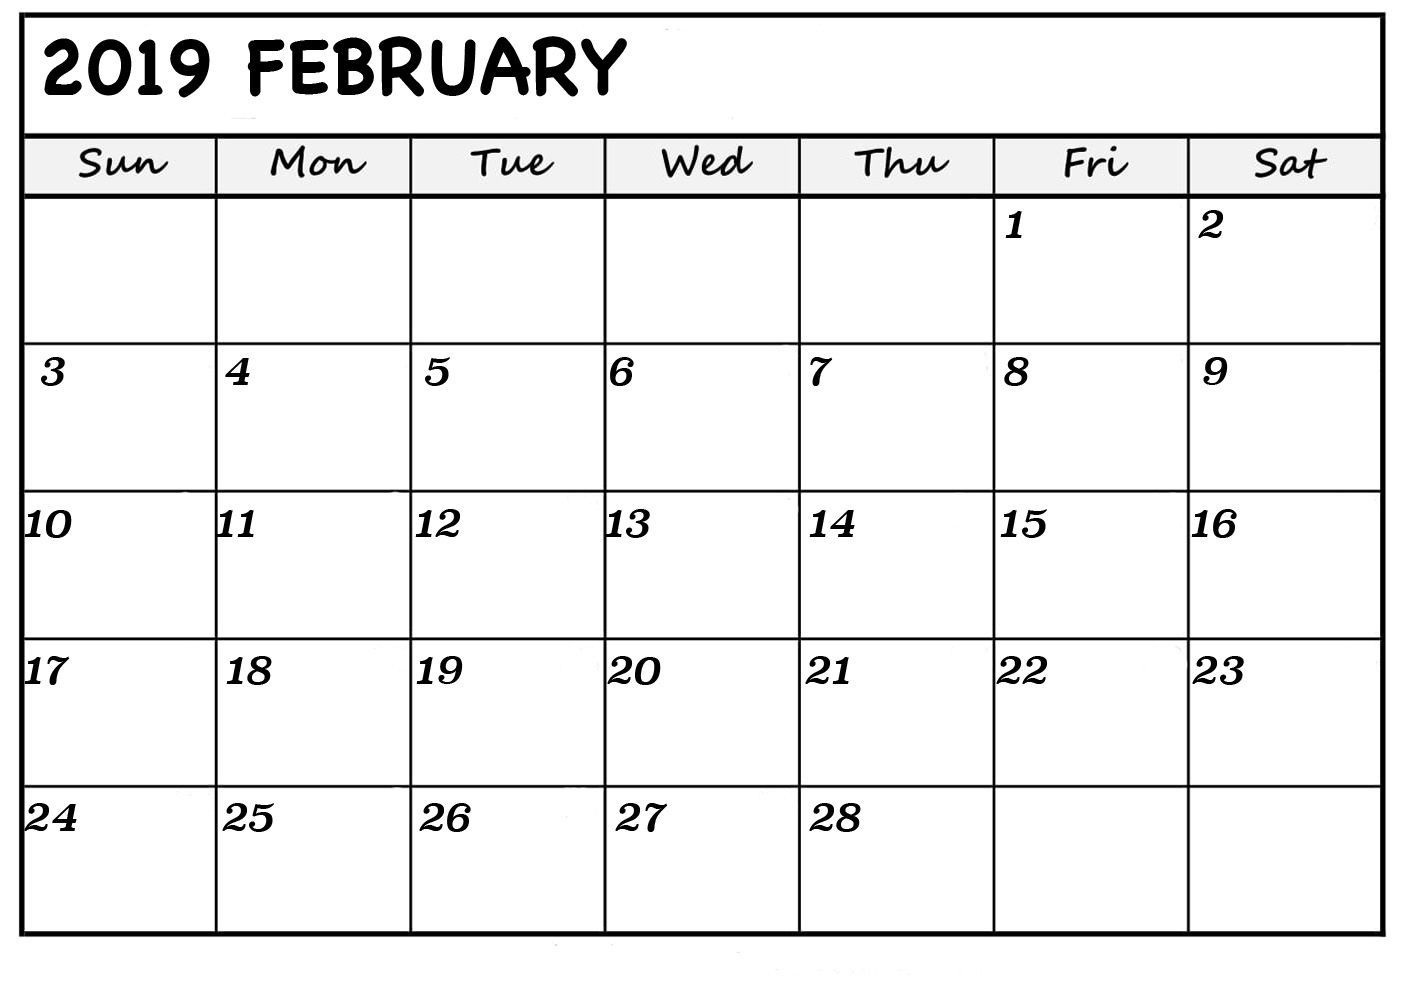 February Blank Calendar 2019 | Monthly Calendar Template